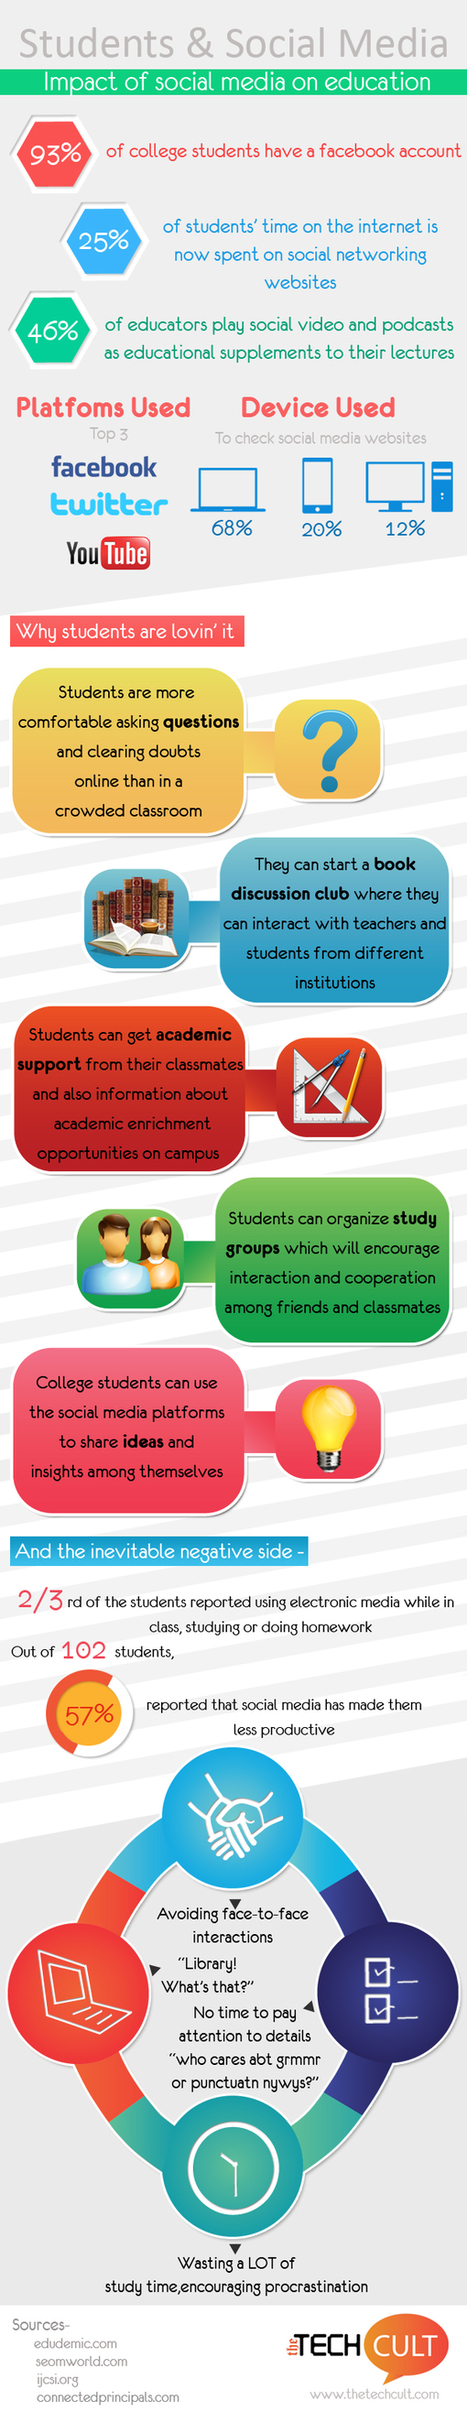 Impact Of Social Media In Education Infographic | Social Media 4 Education | Scoop.it